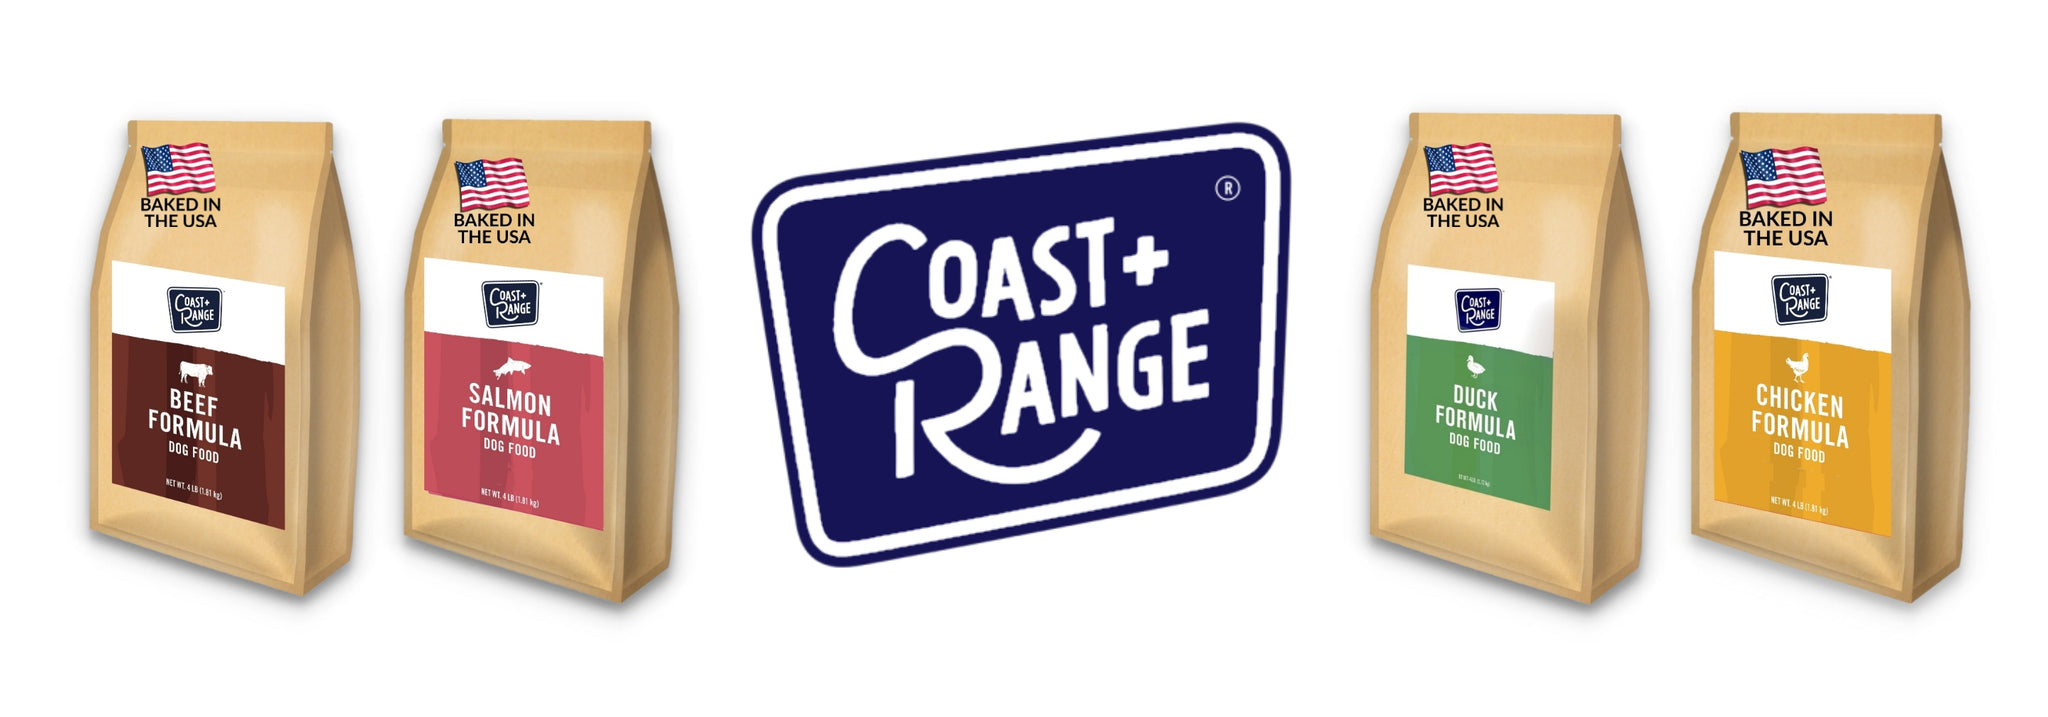 PERKS OF BEING A COAST+RANGE SUBSCRIBER!